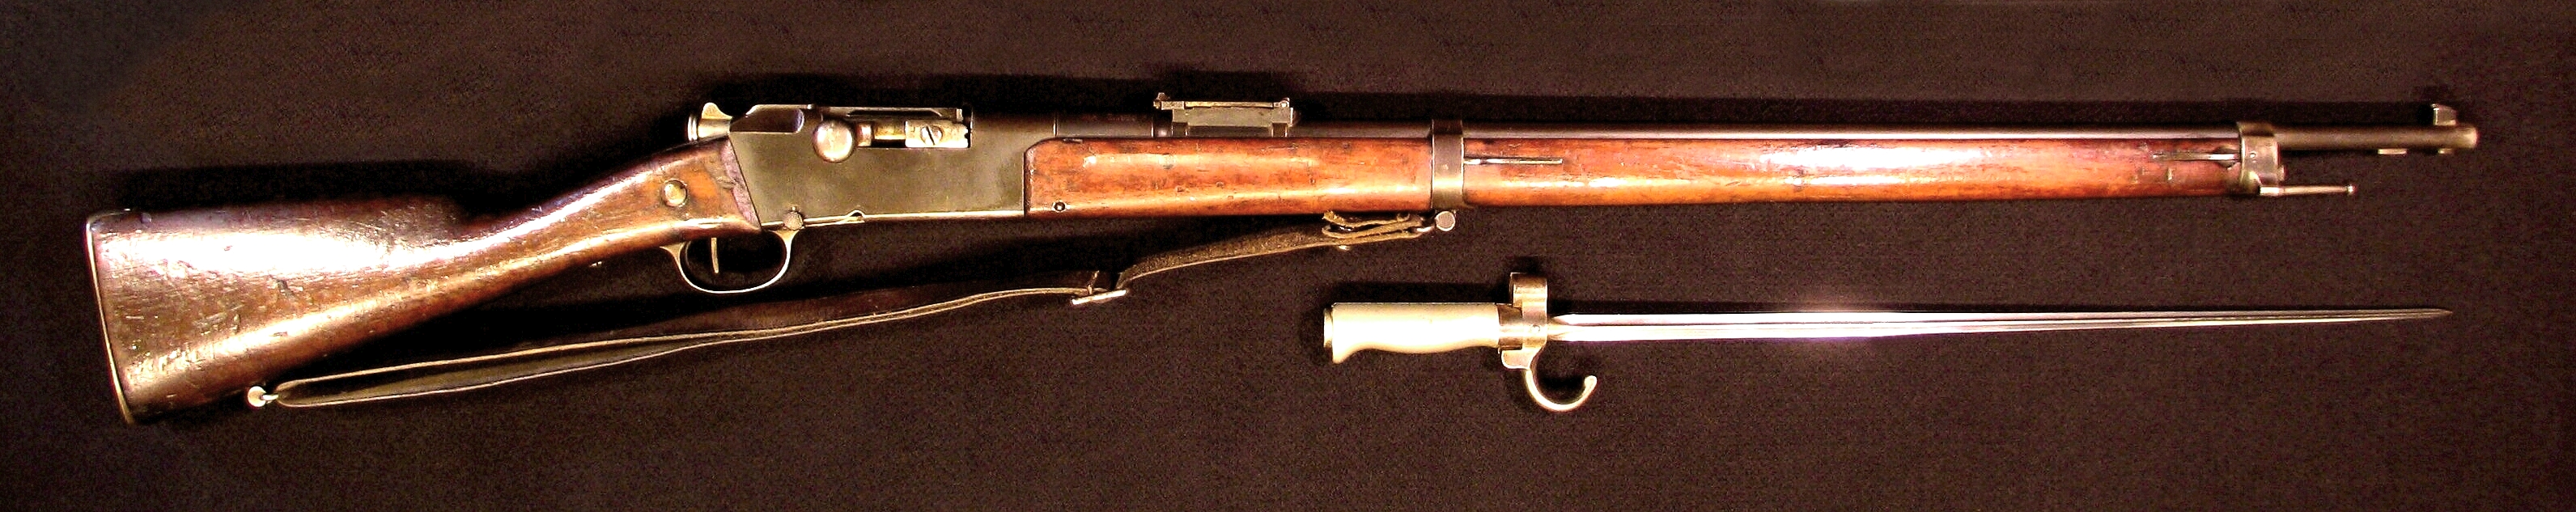 Click image for larger version.  Name:Mle 1886 Lebel Rifle 01B (1A).jpg Views:3 Size:1.76 MB ID:3667285